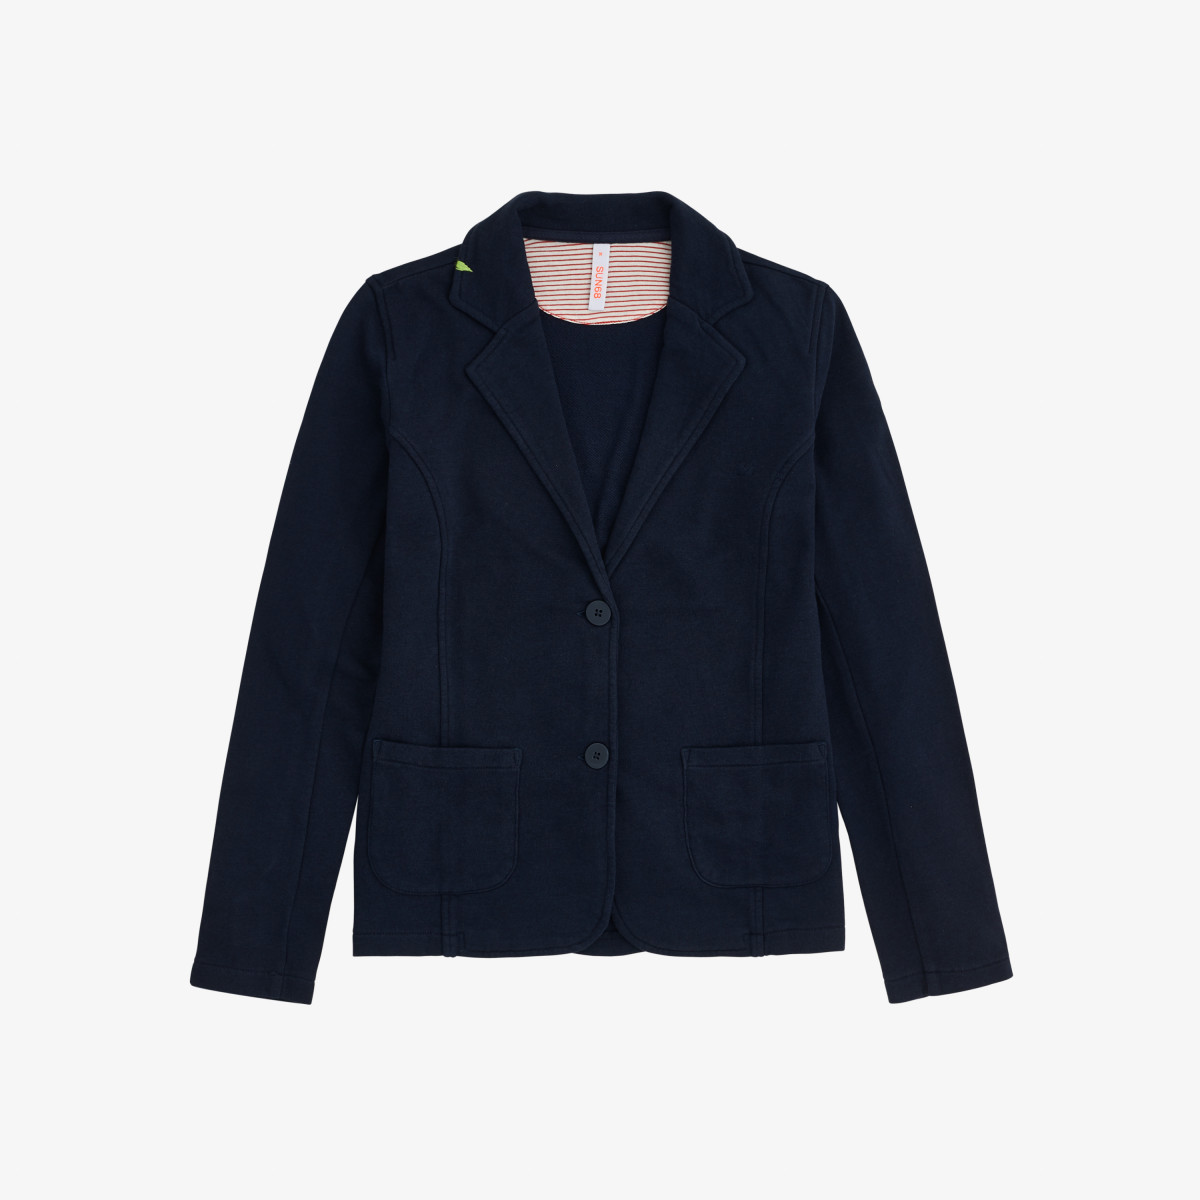 JACKET COTTON FL NAVY BLUE